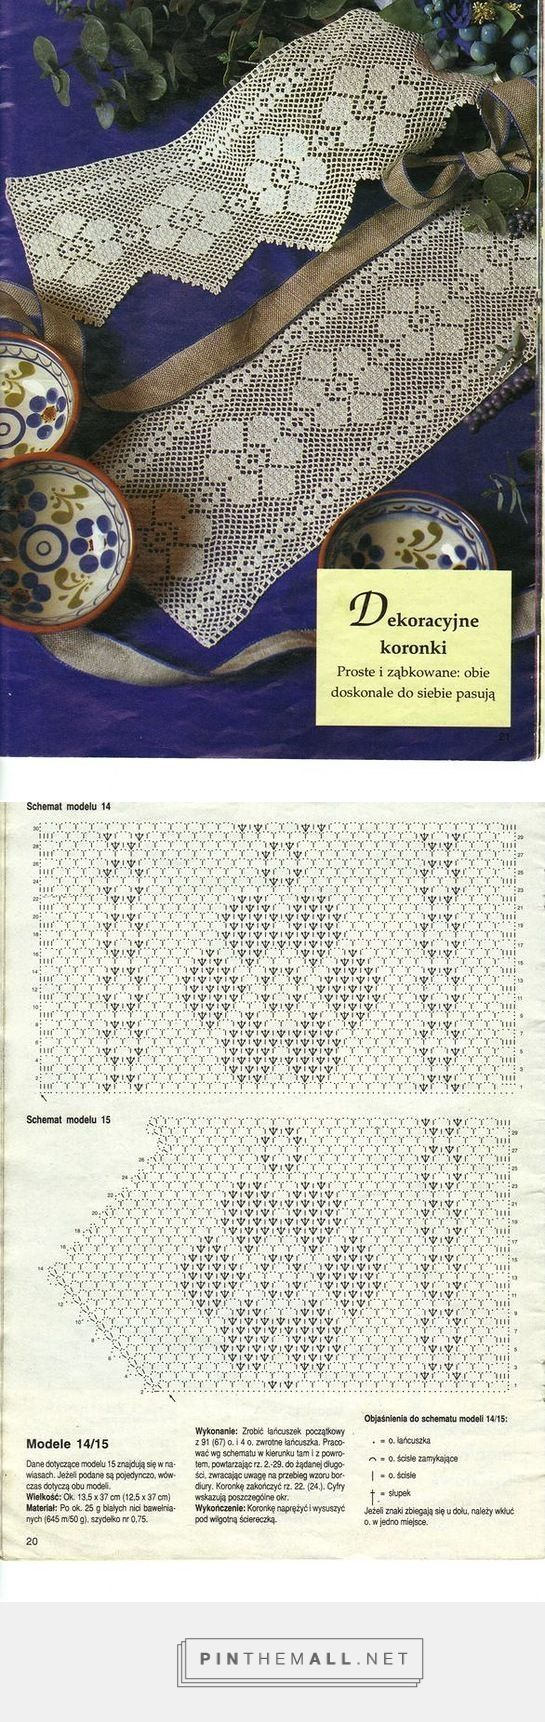 Filet crochet lace insert & edging with flower design